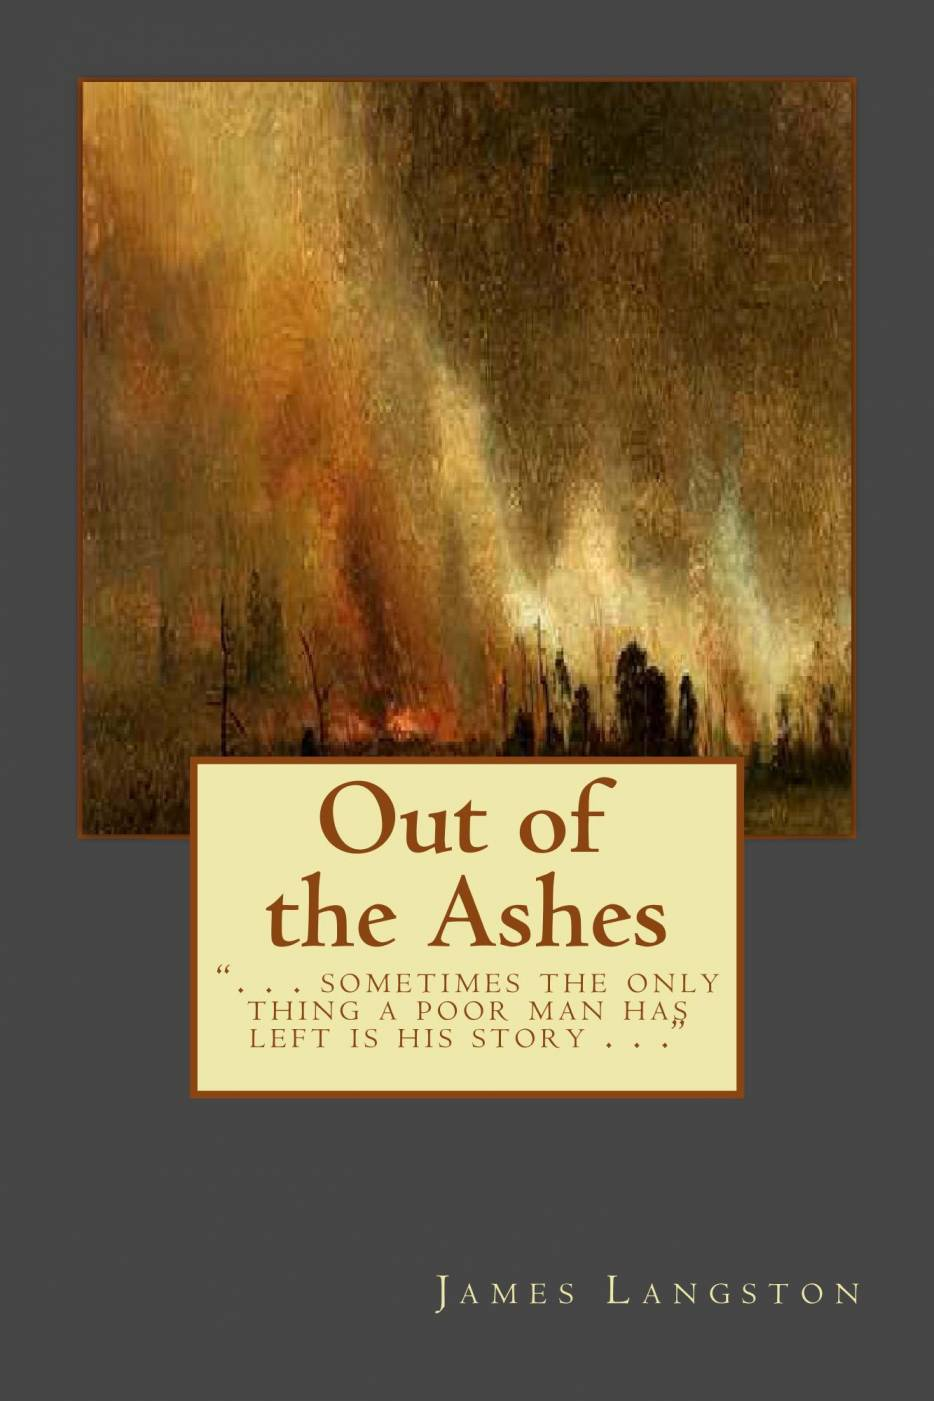 Out_of_the_Ashes_Cover_for_Kindle